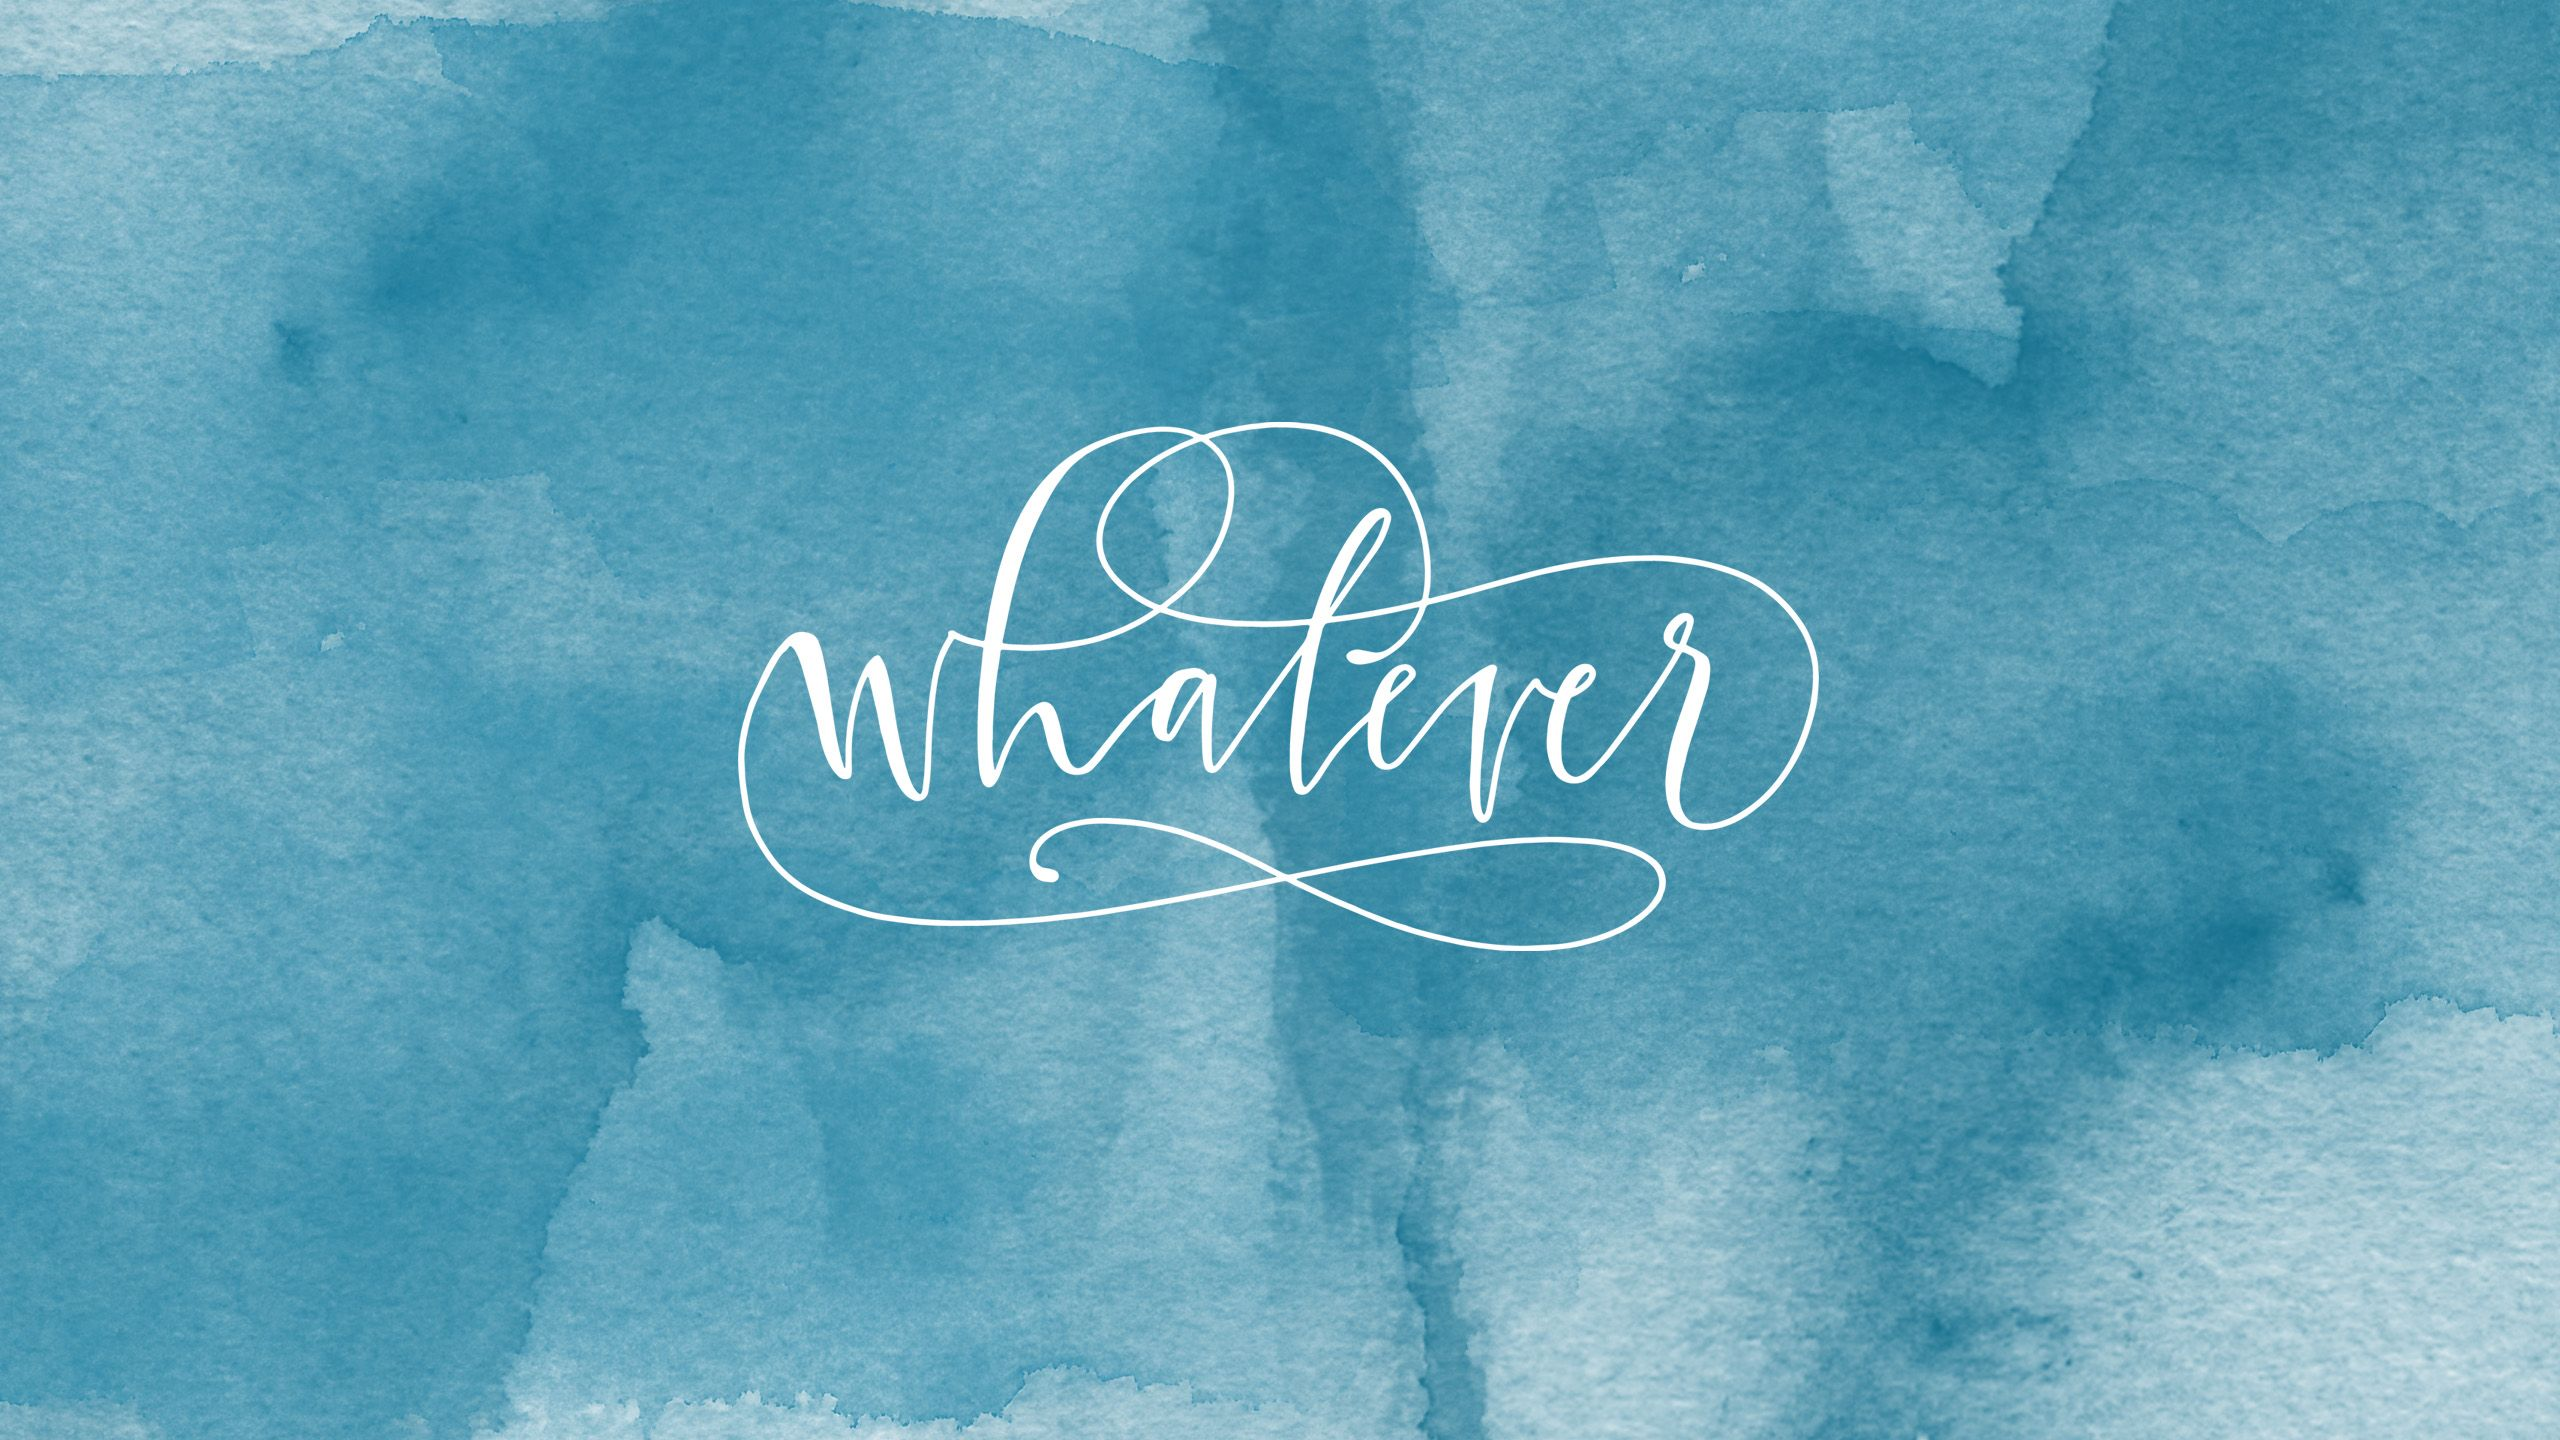 Blue teal watercolor Whatever desktop wallpaper background 2560x1440